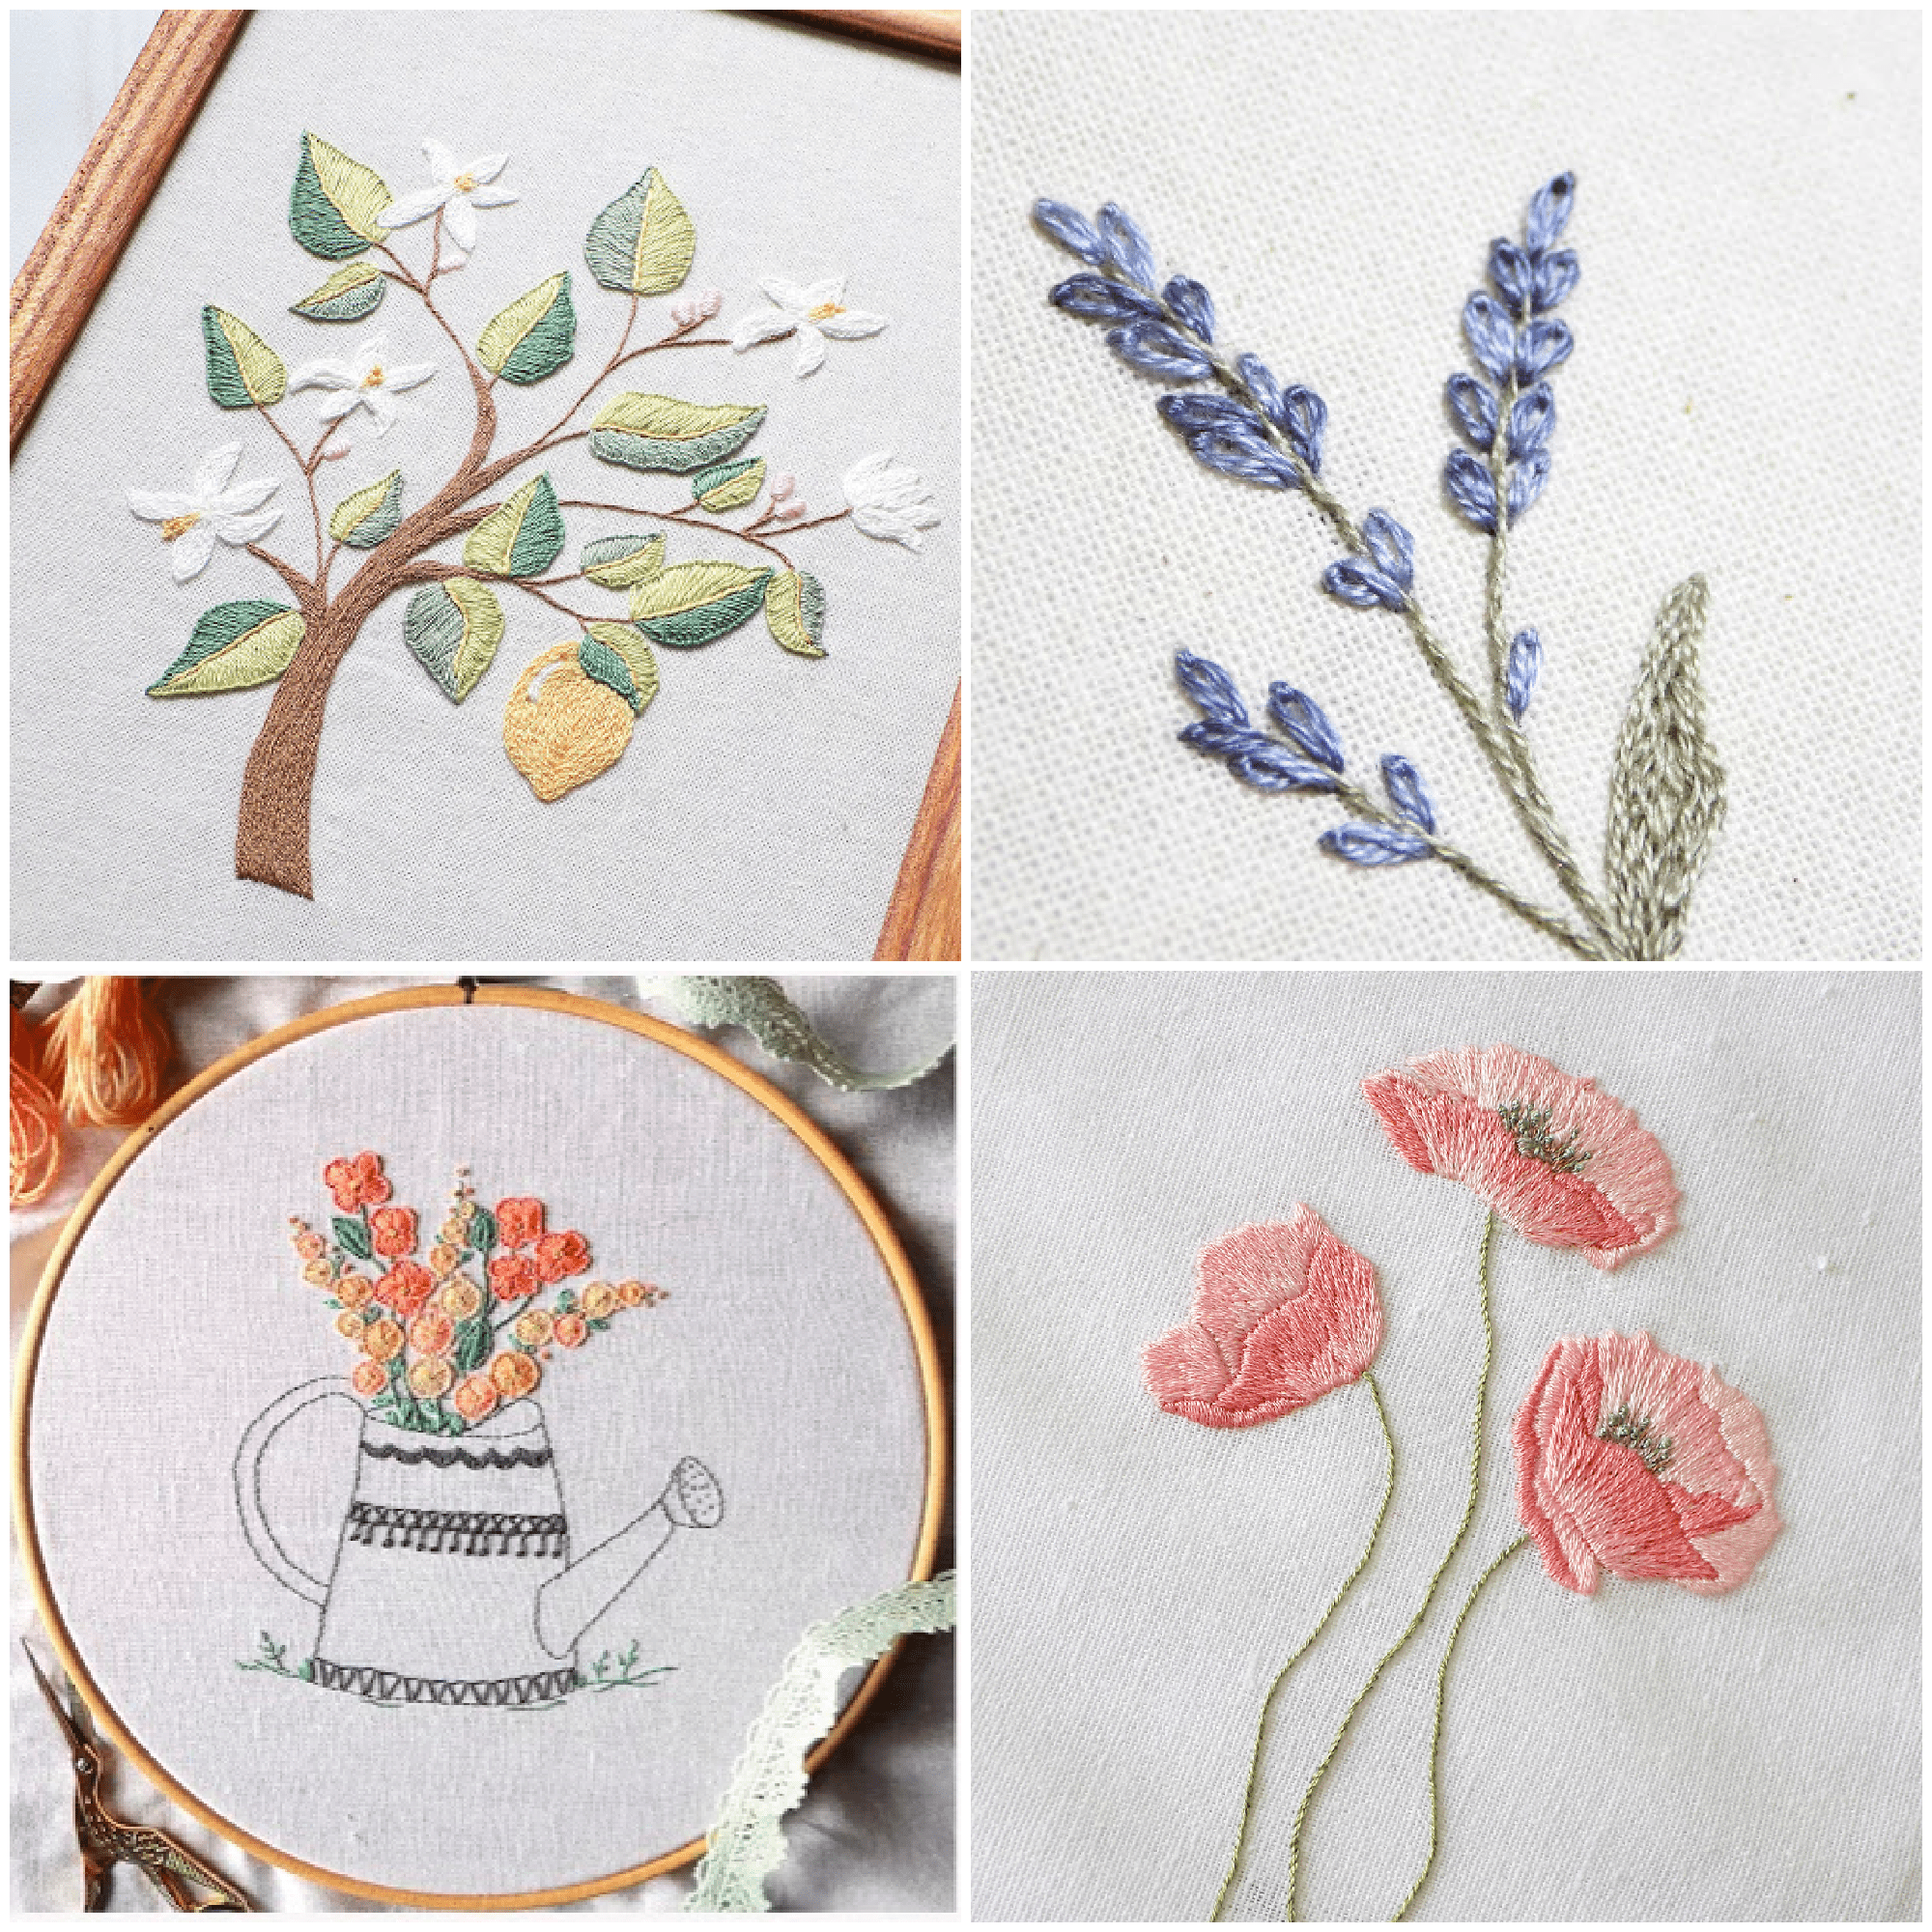 17 Sites with Fun and Free Hand Embroidery Patterns -  So many pretty floral embroidery patterns for free.  - #Embroidery #EmbroideryPatterns #Free #Fun #Hand #HandEmbroidery #HandEmbroideryPatterns #patterns #sites